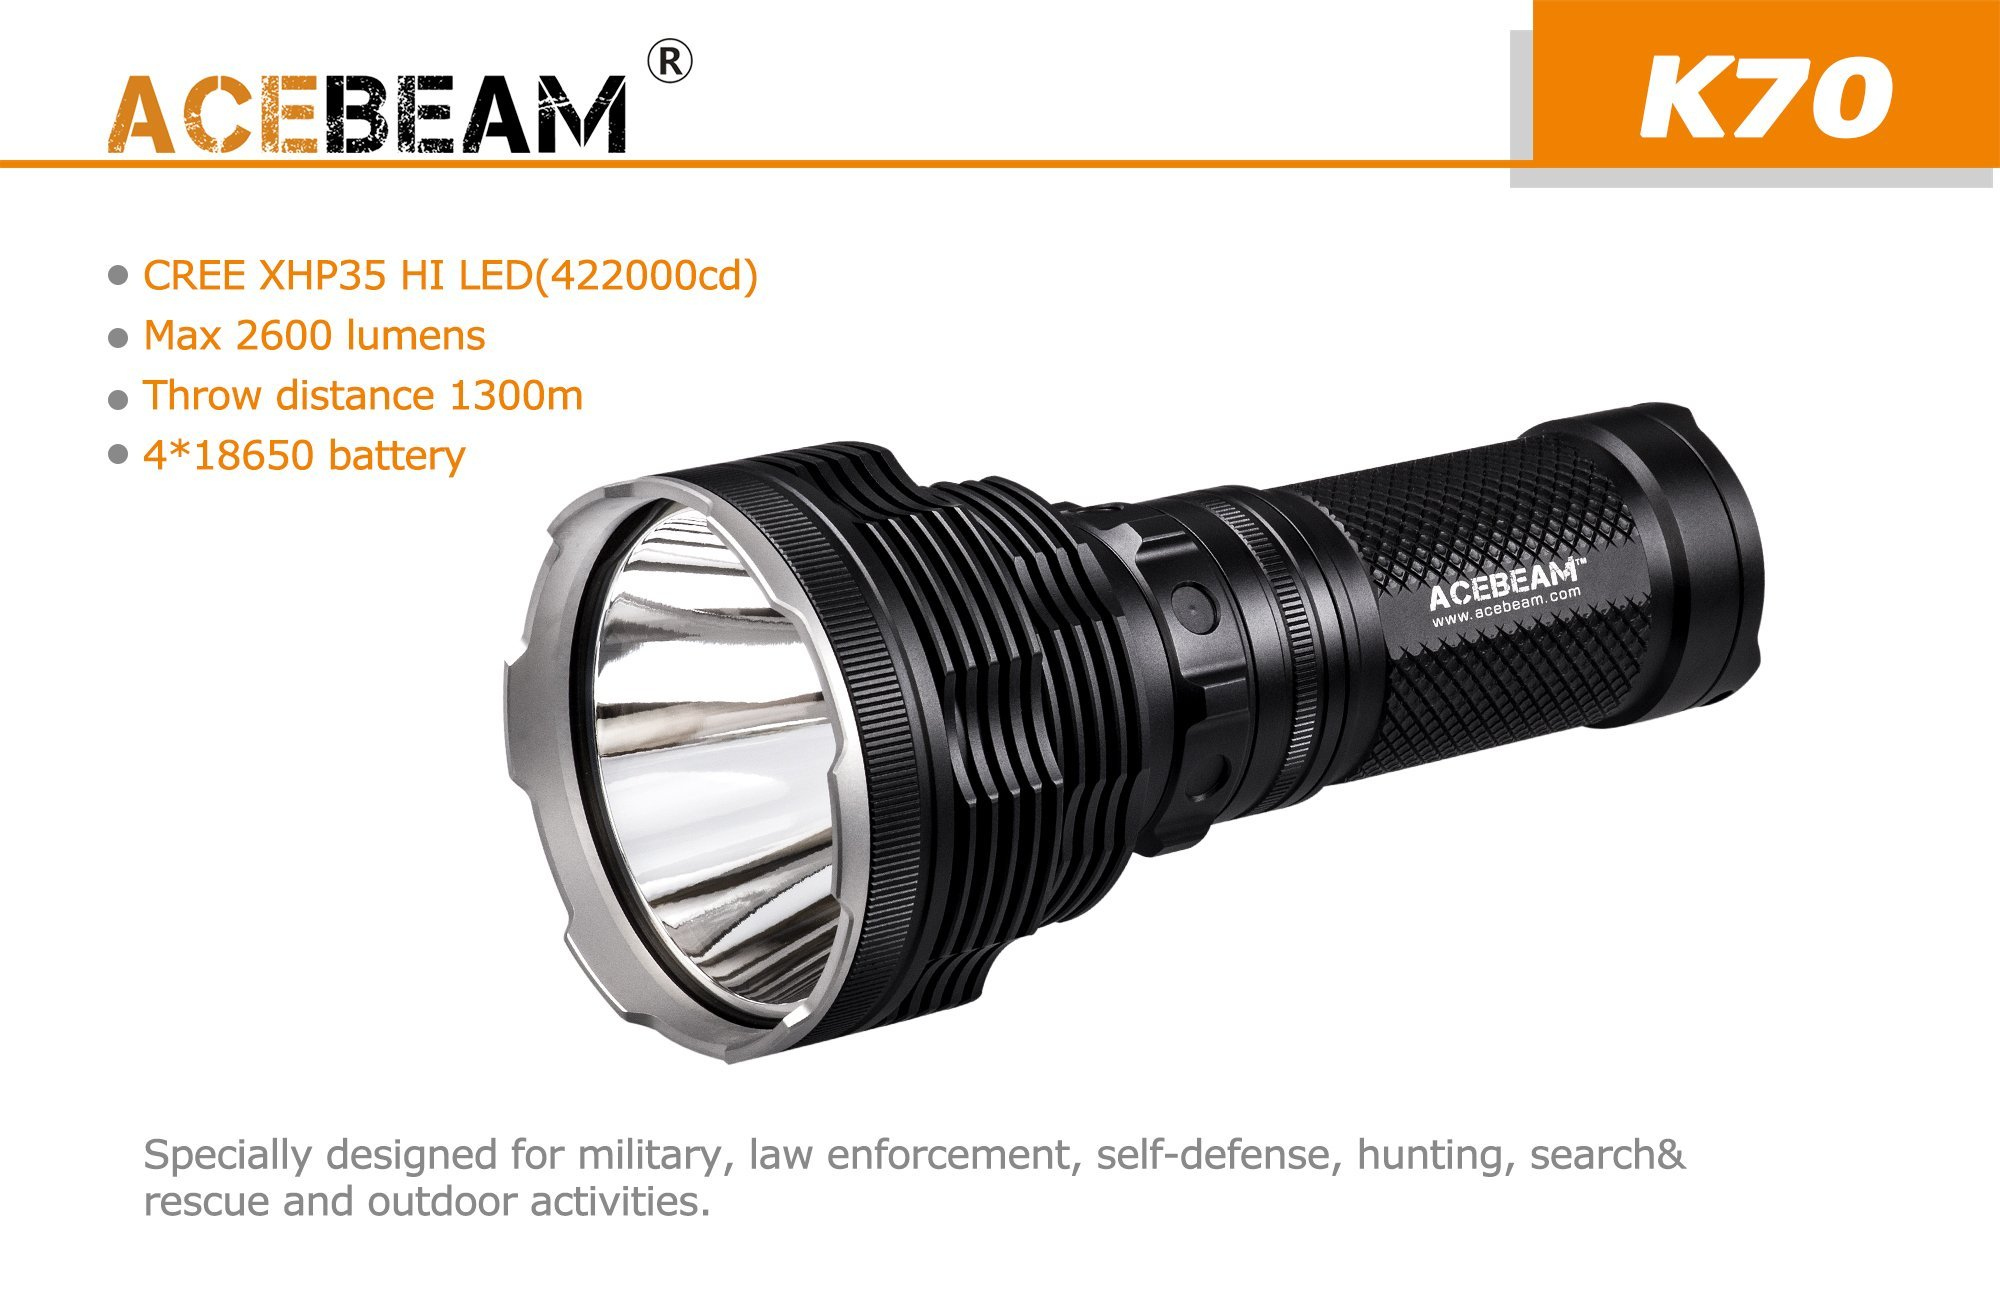 ACEBeam K70 CREE XHP35 Hi LED Flashlight Use 4x 18650 Battery 2600lumens Throw 1300meters by Acebeam (Image #2)